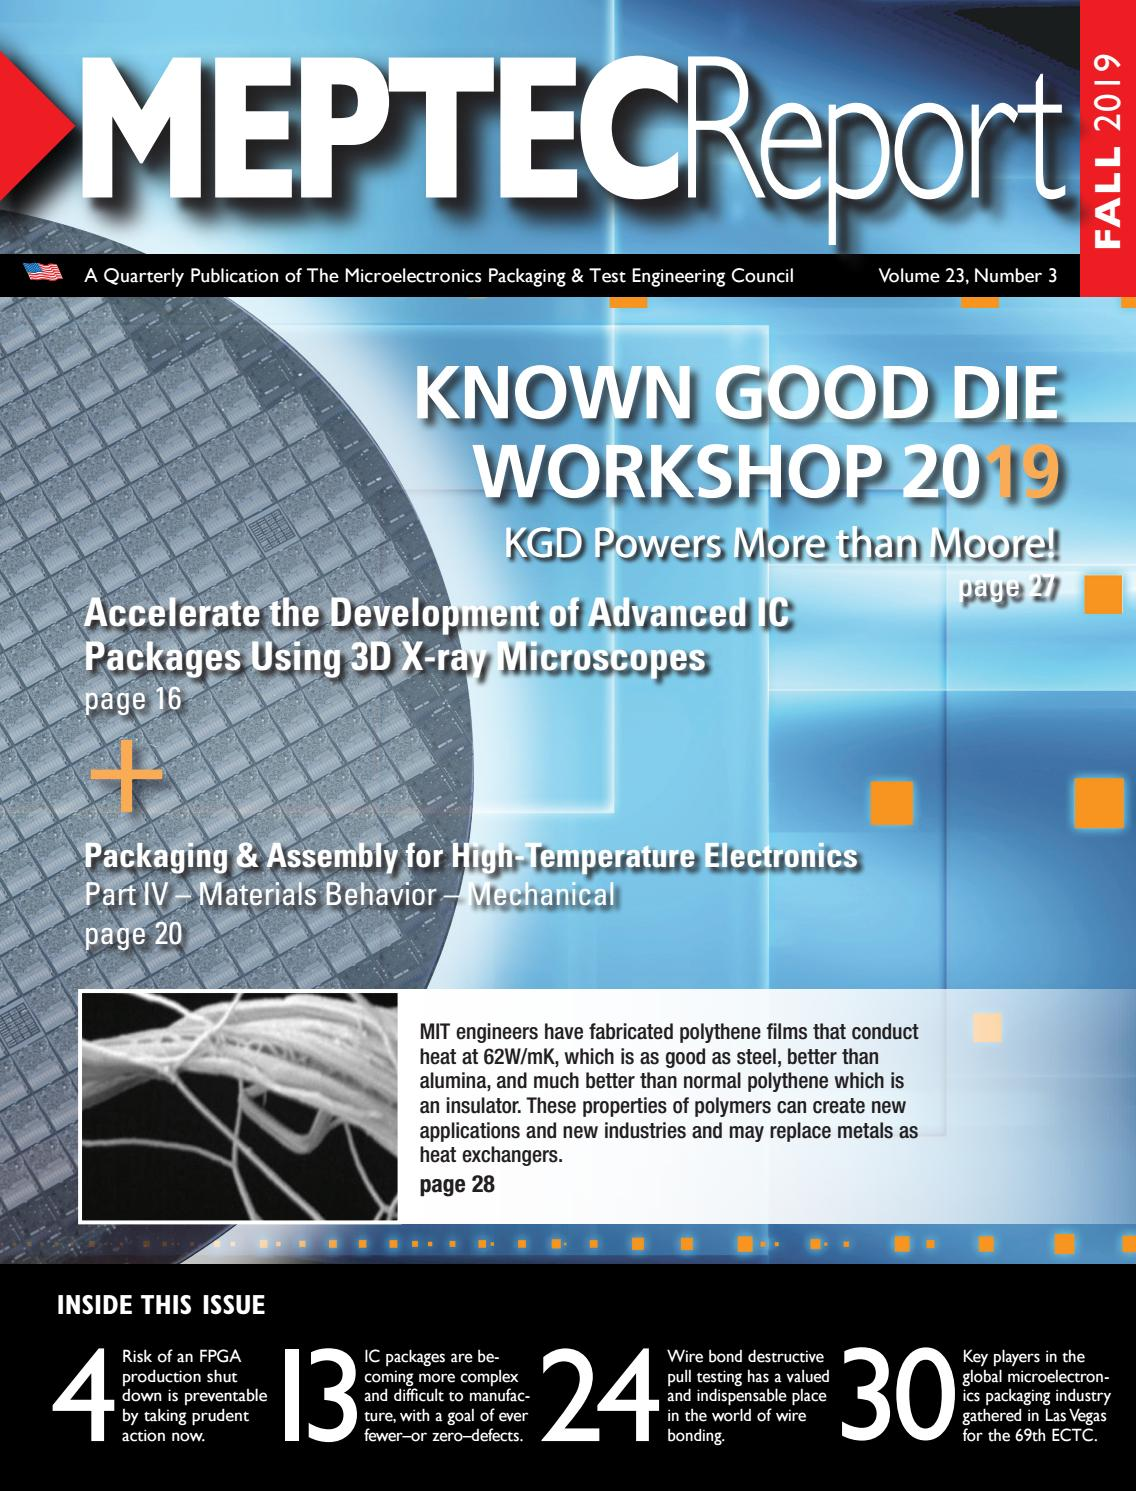 MEPTEC Report Fall 2019 Issue by MEPCOM LLCMEPTEC issuu